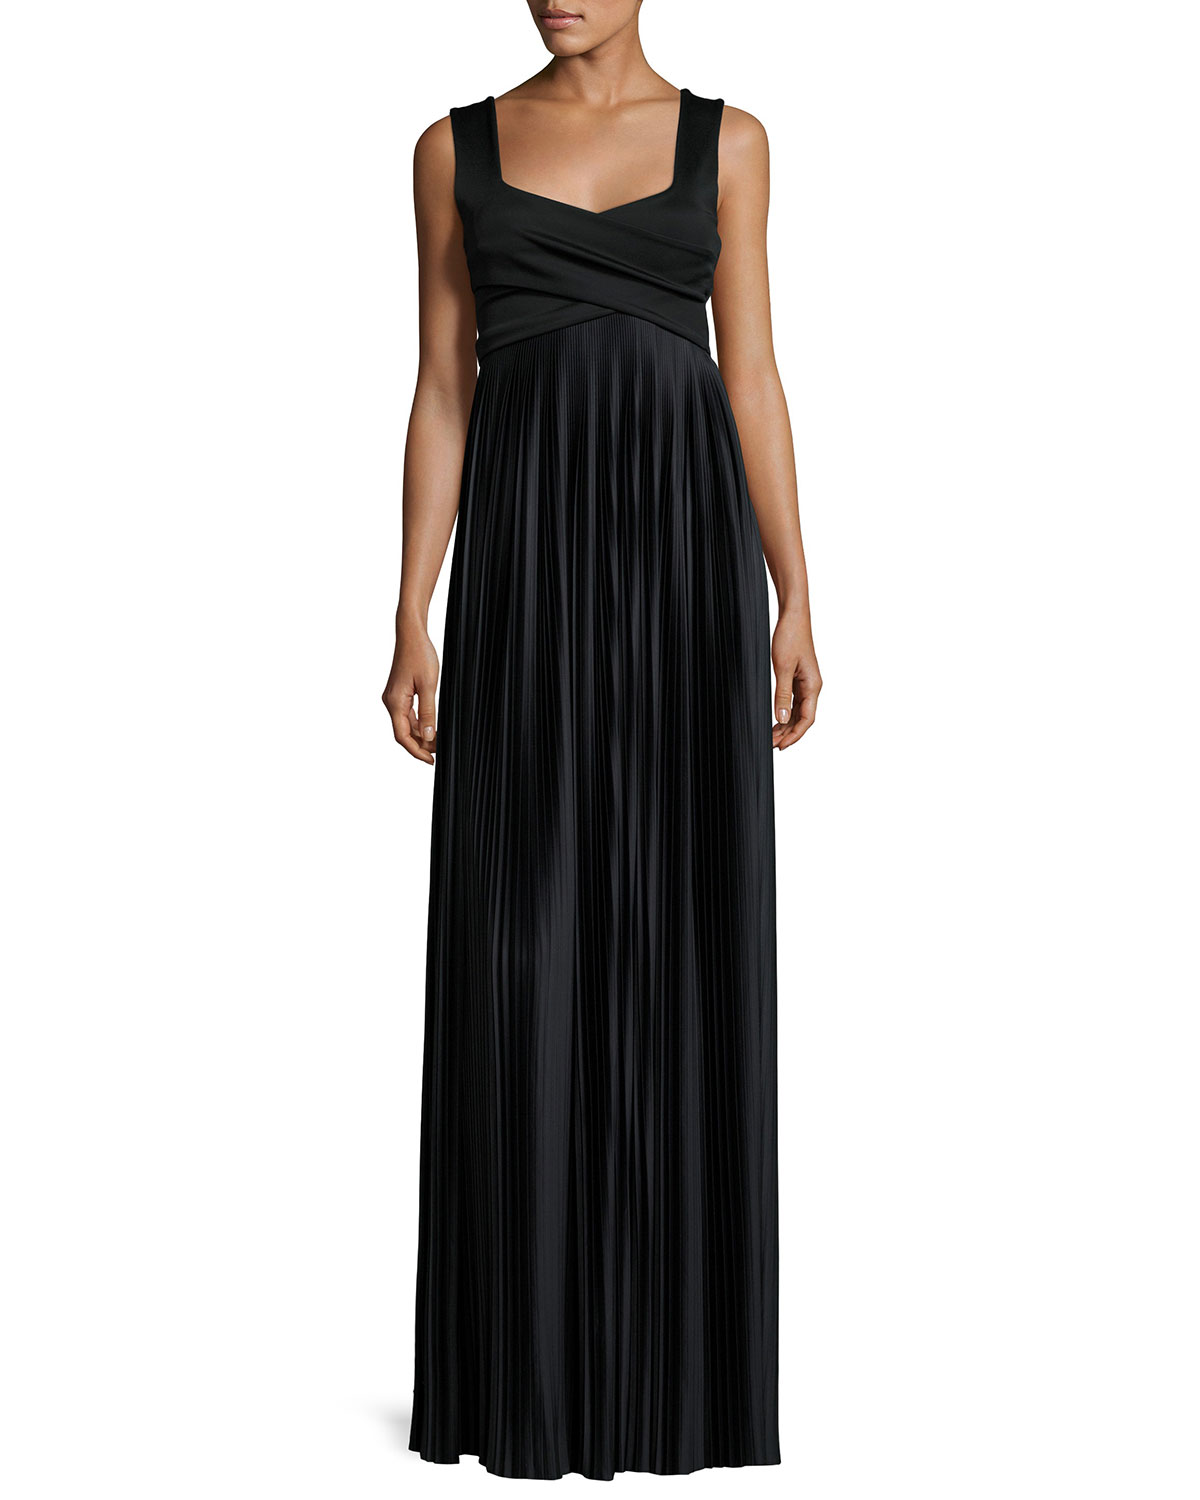 Jvw Home Free Interior Design Free Pillows: THE ROW Alain Pleated Sleeveless Gown, Black